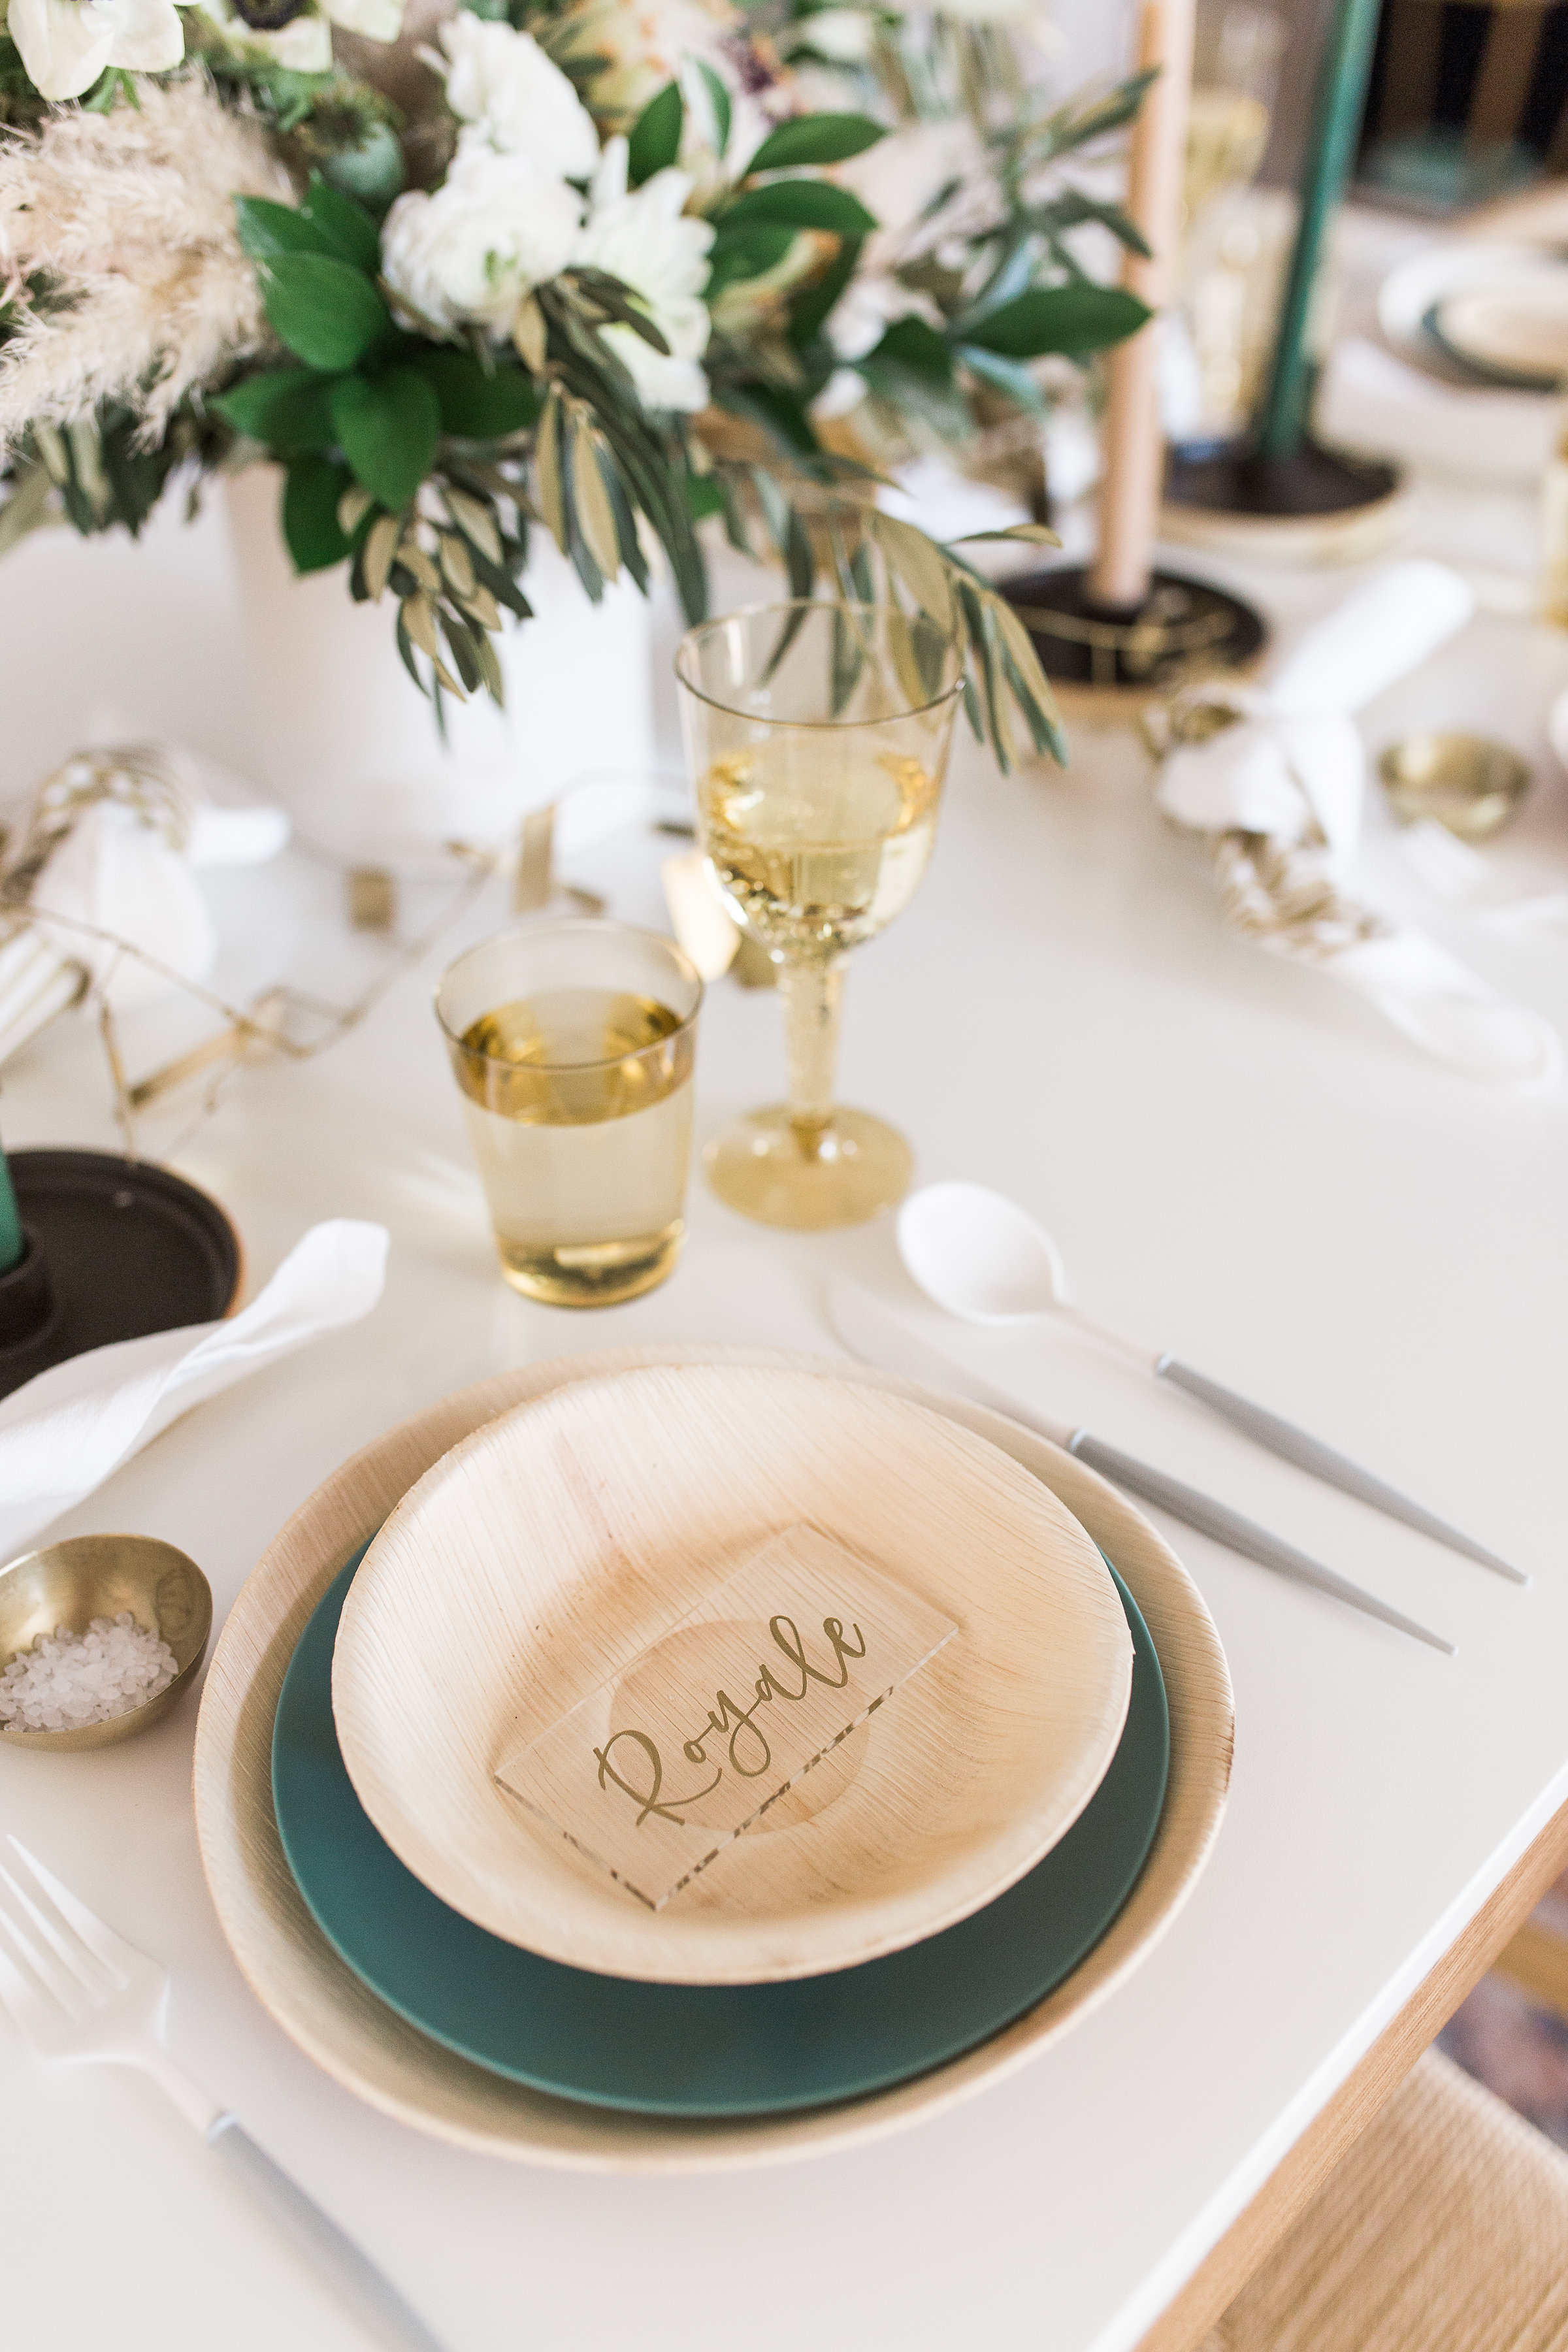 Table setting for indoor brunch party